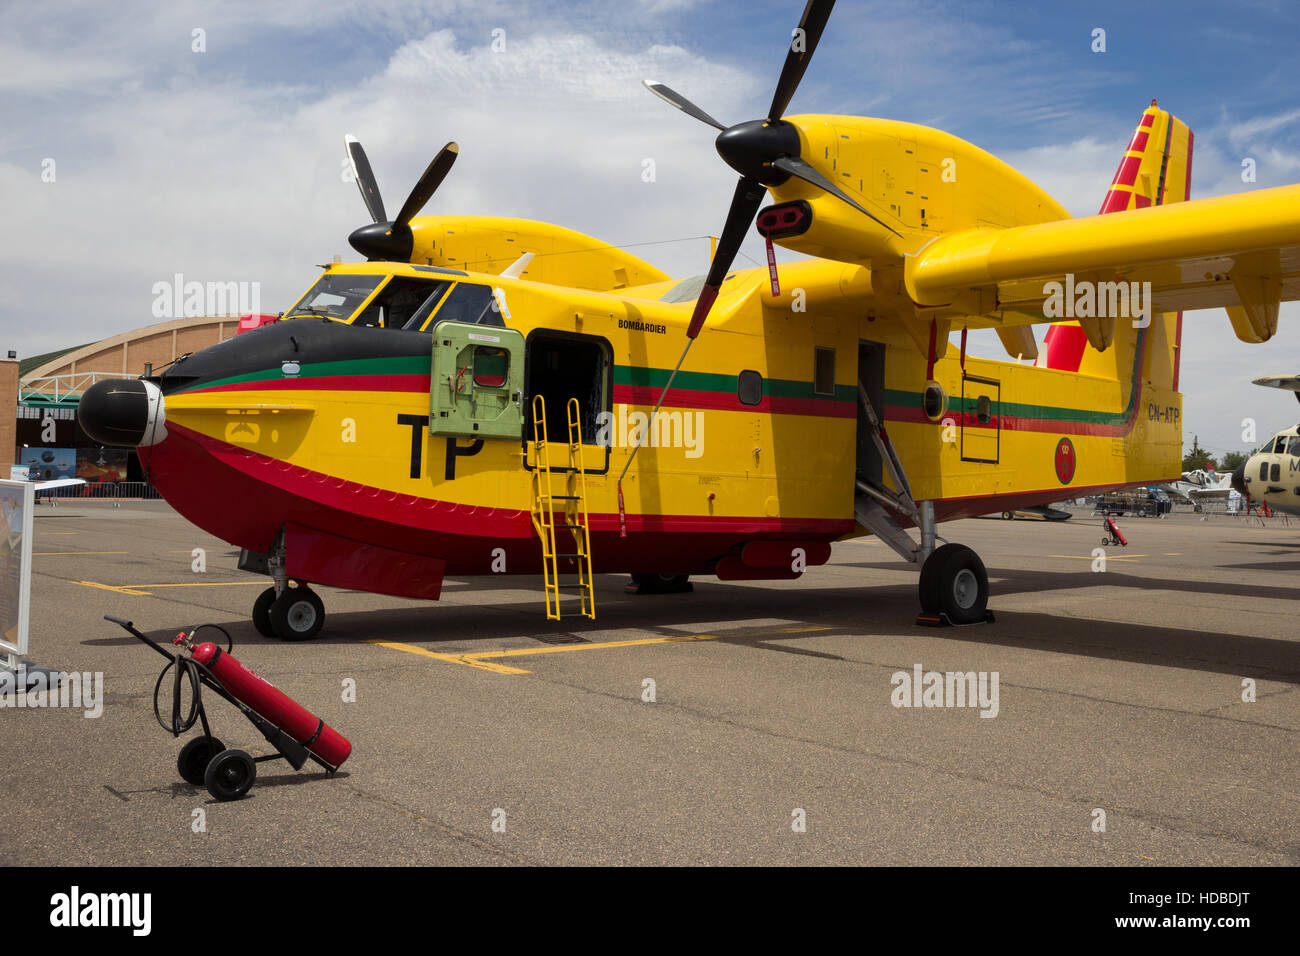 Royal Moroccan Air Force Canadair CL-415 water bomber - Stock Image